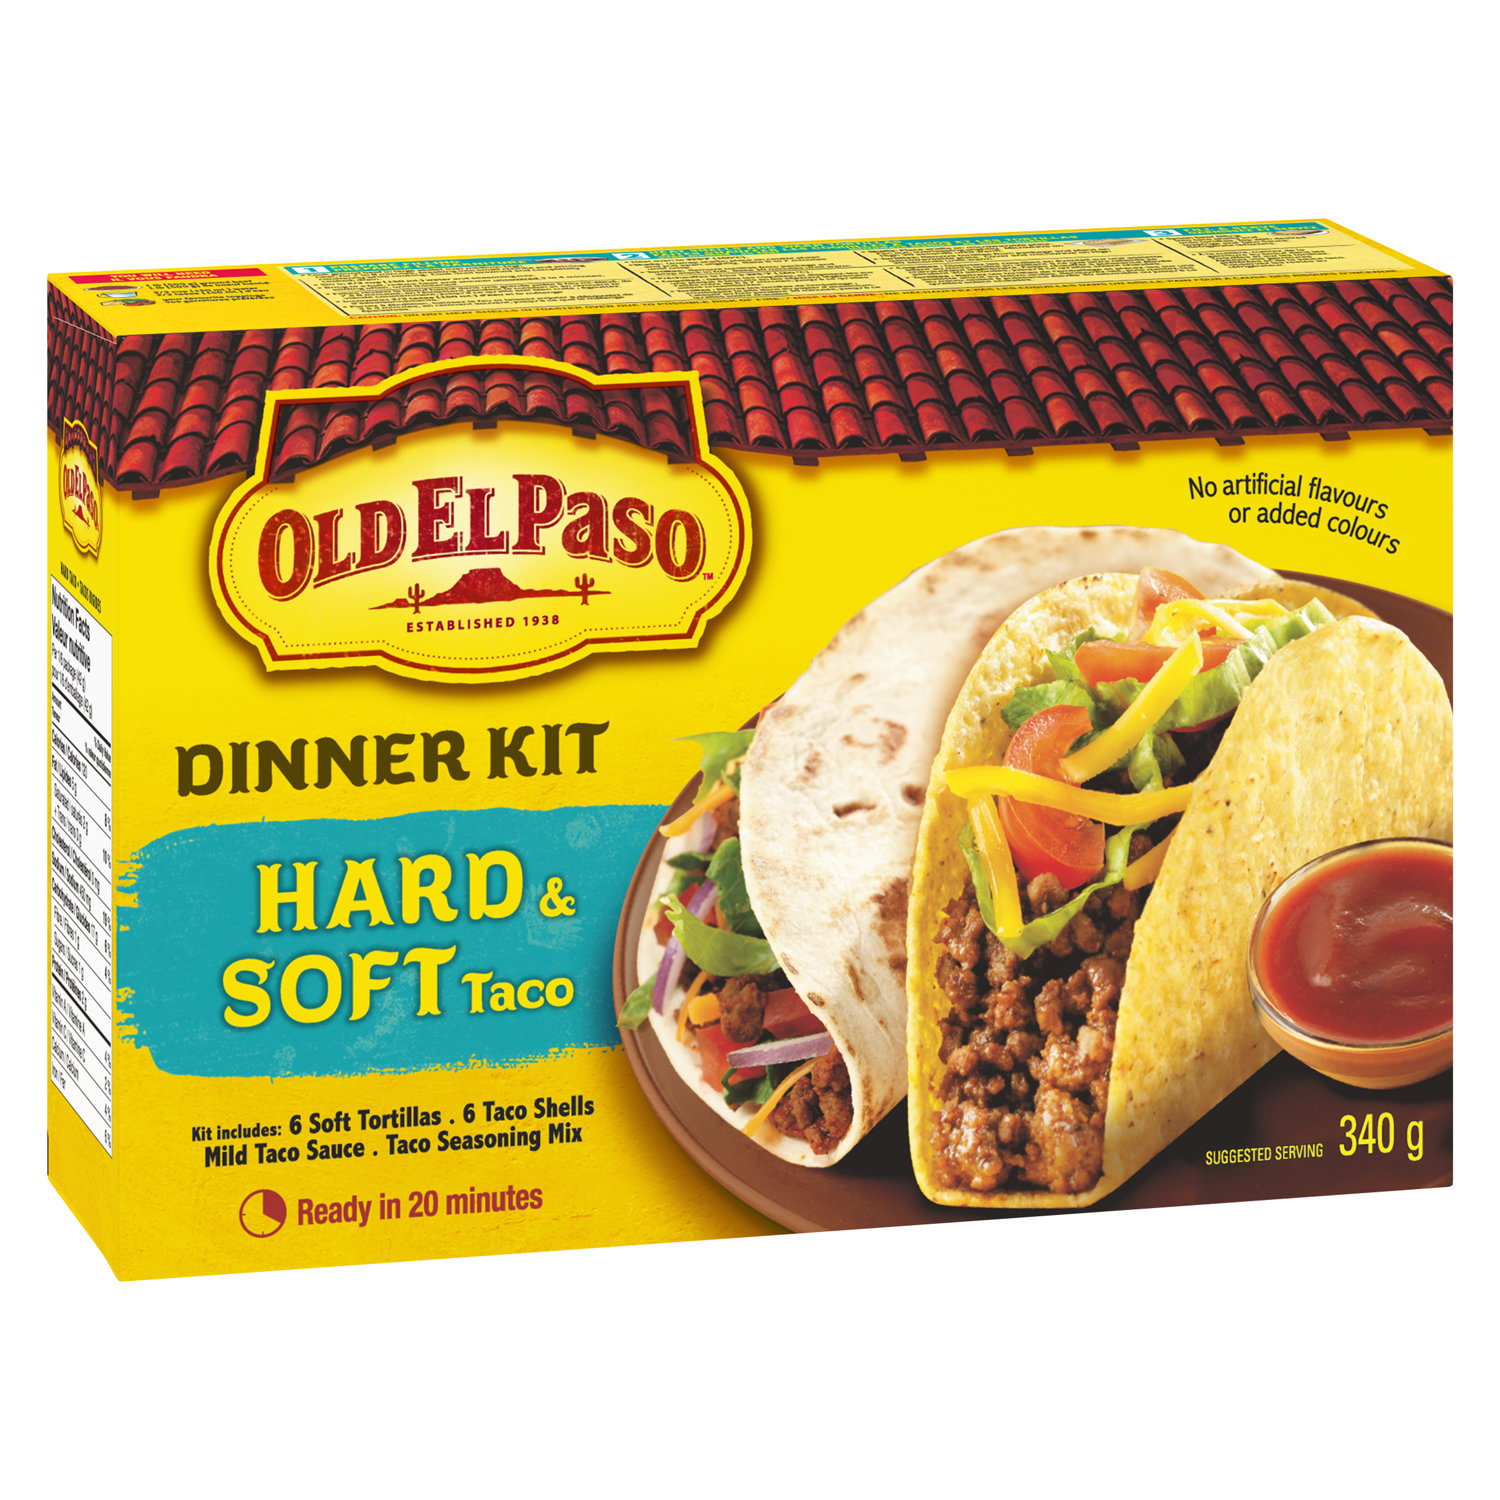 Old El Paso Old El Paso Dinner Kit Hard Soft Taco 340 G